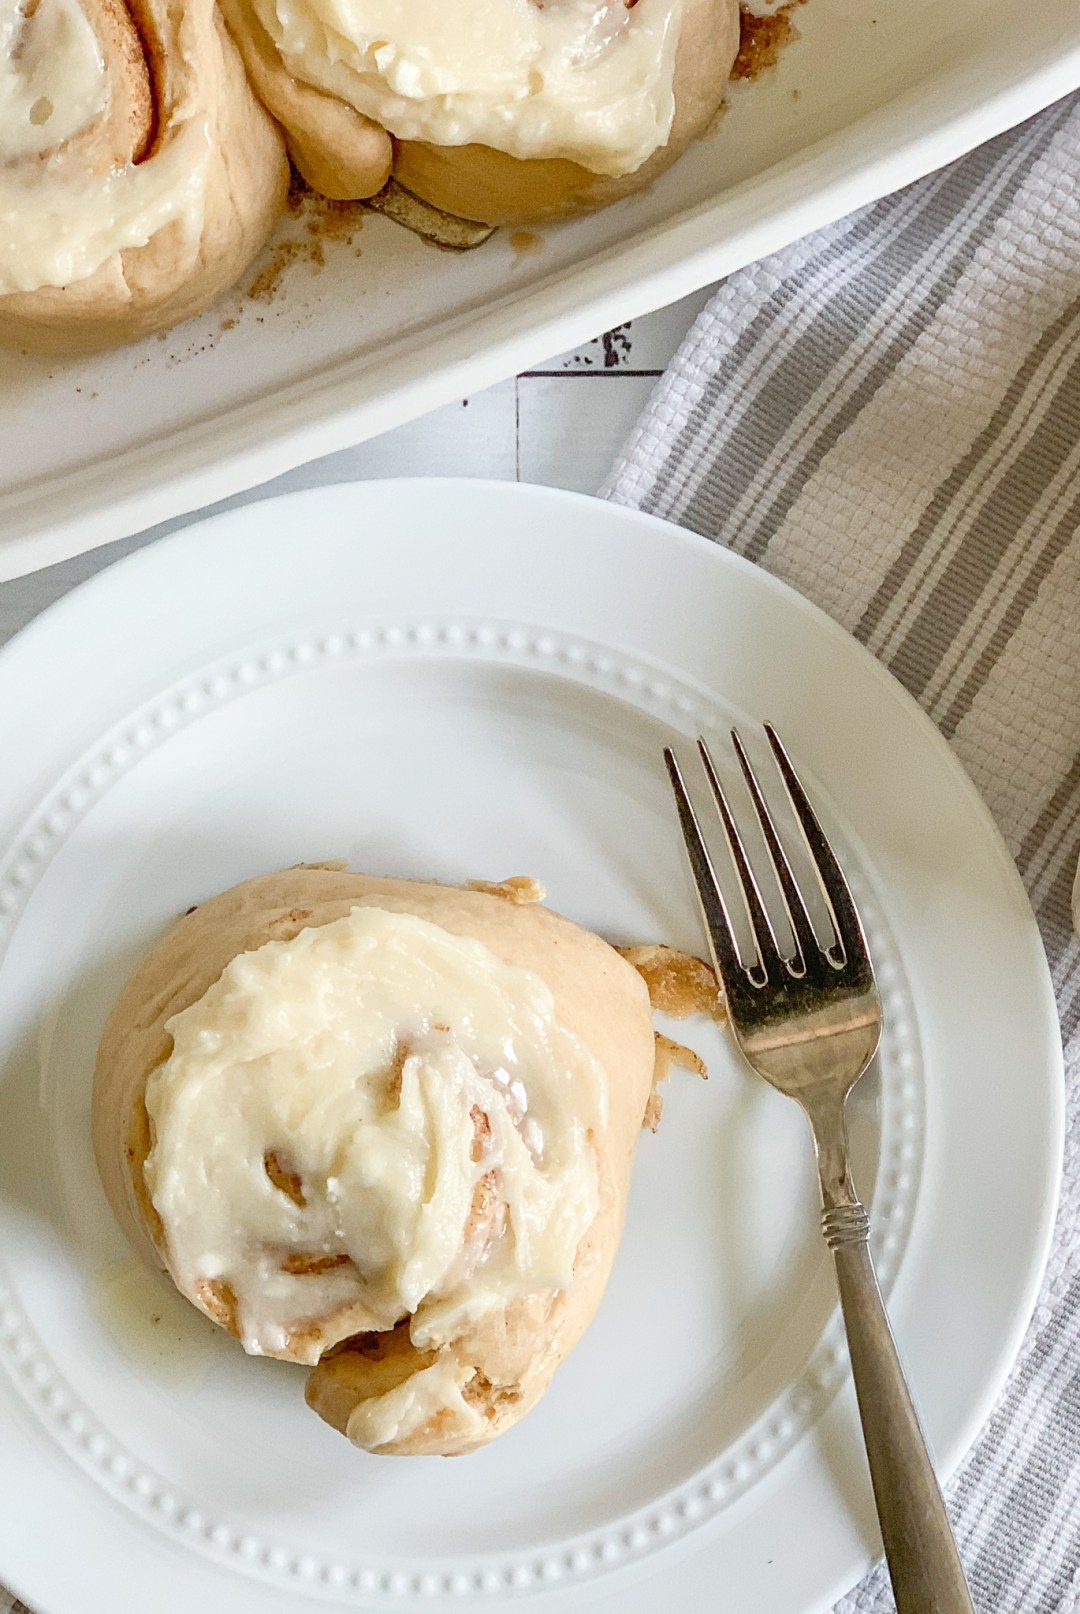 Cinnamon Roll on a pate Fork